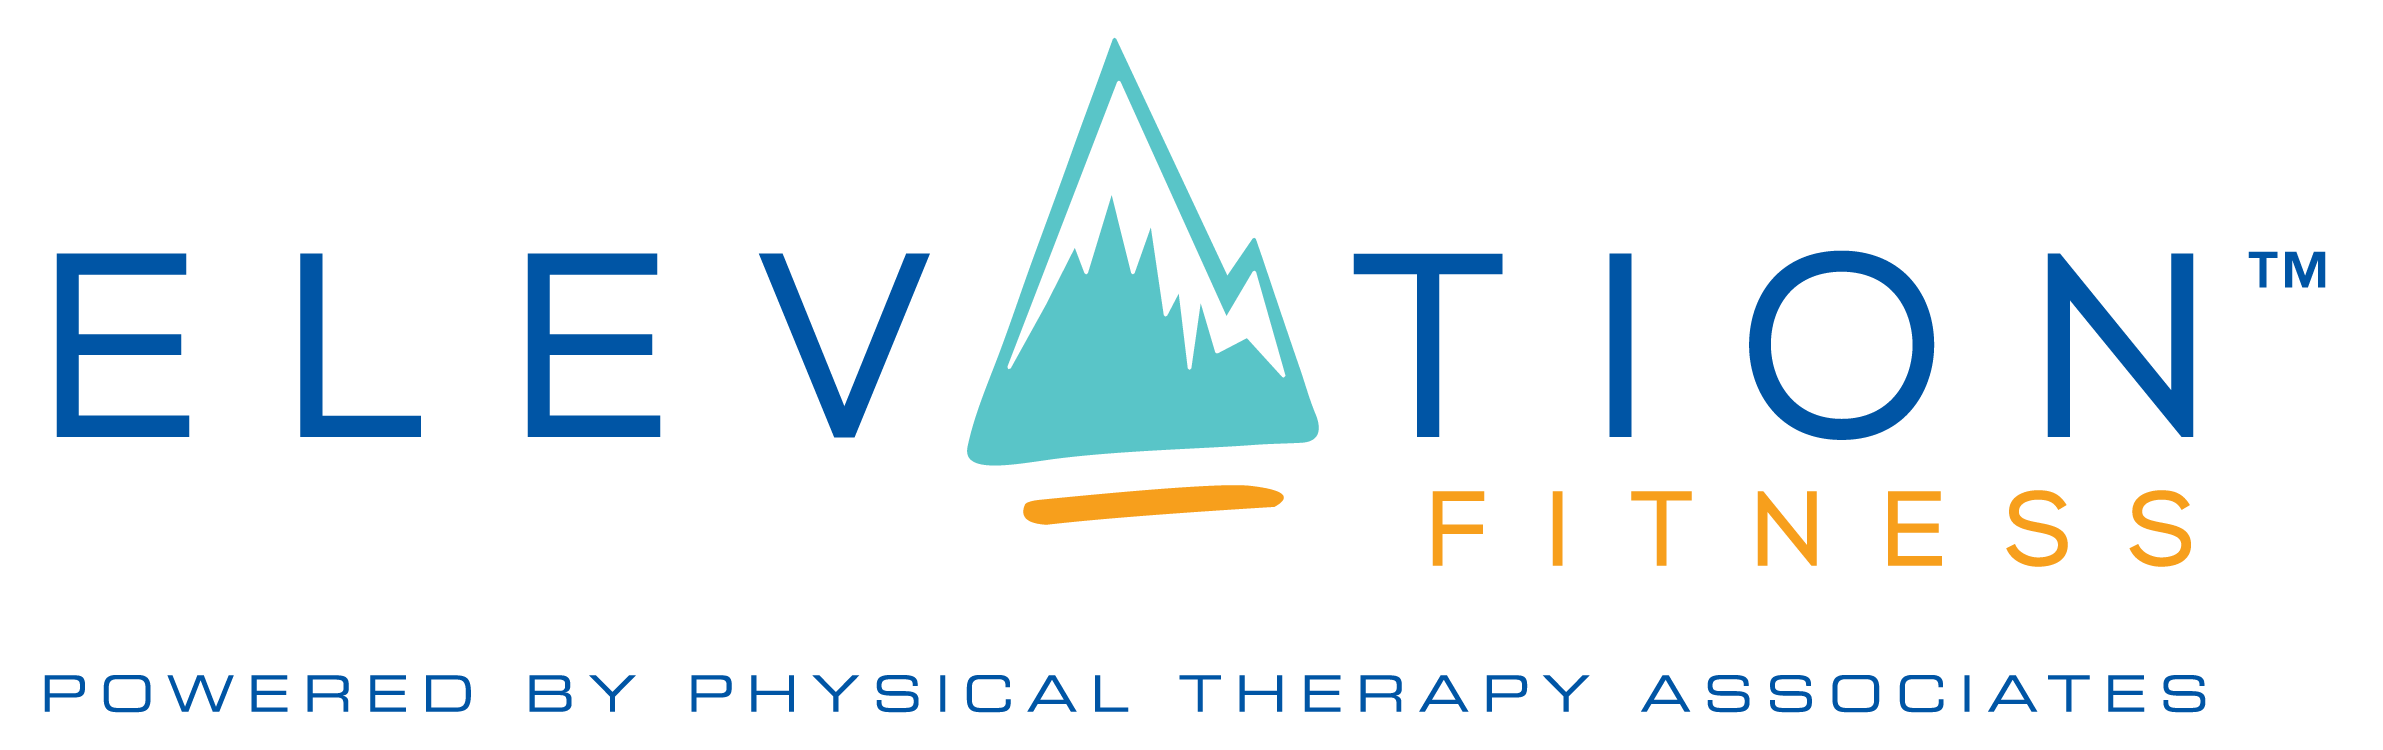 ElevationFitness_LogoTM-01.png